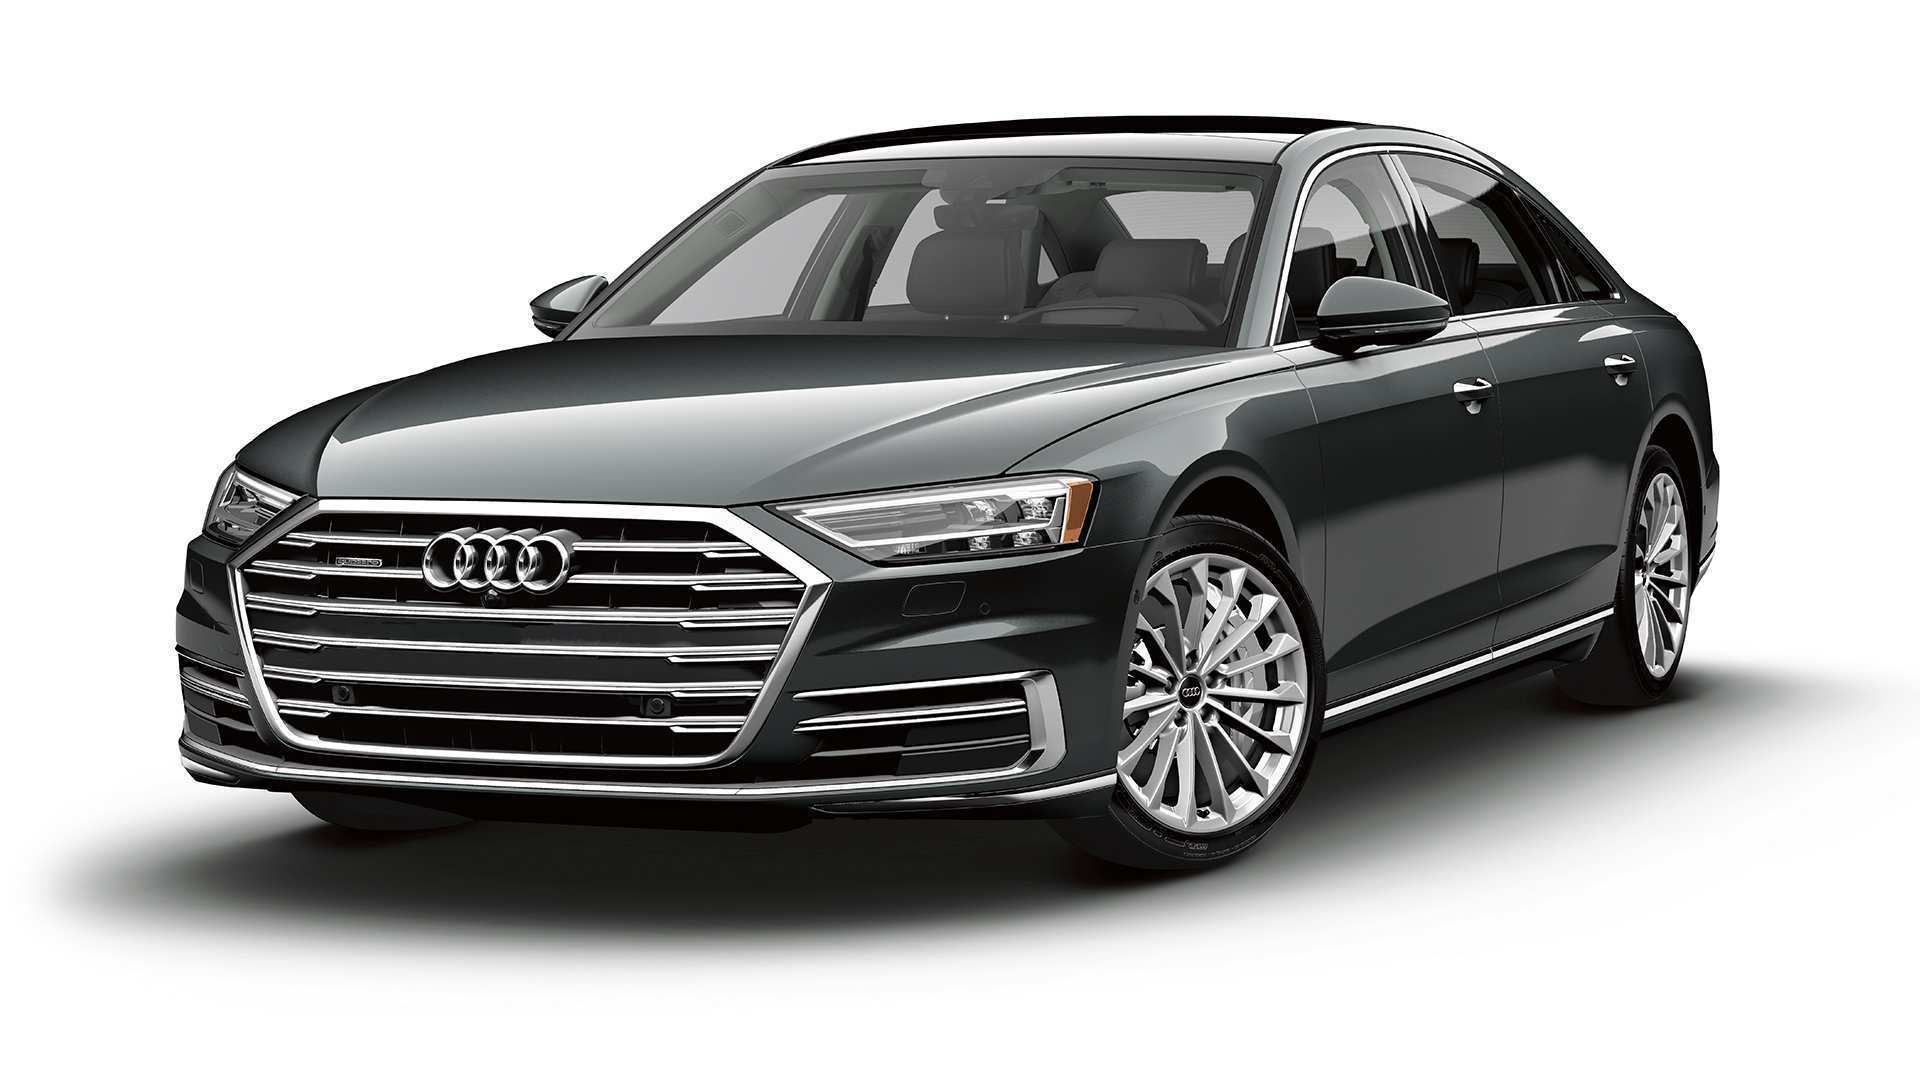 80 Gallery of 2019 Audi A8 Features Concept for 2019 Audi A8 Features